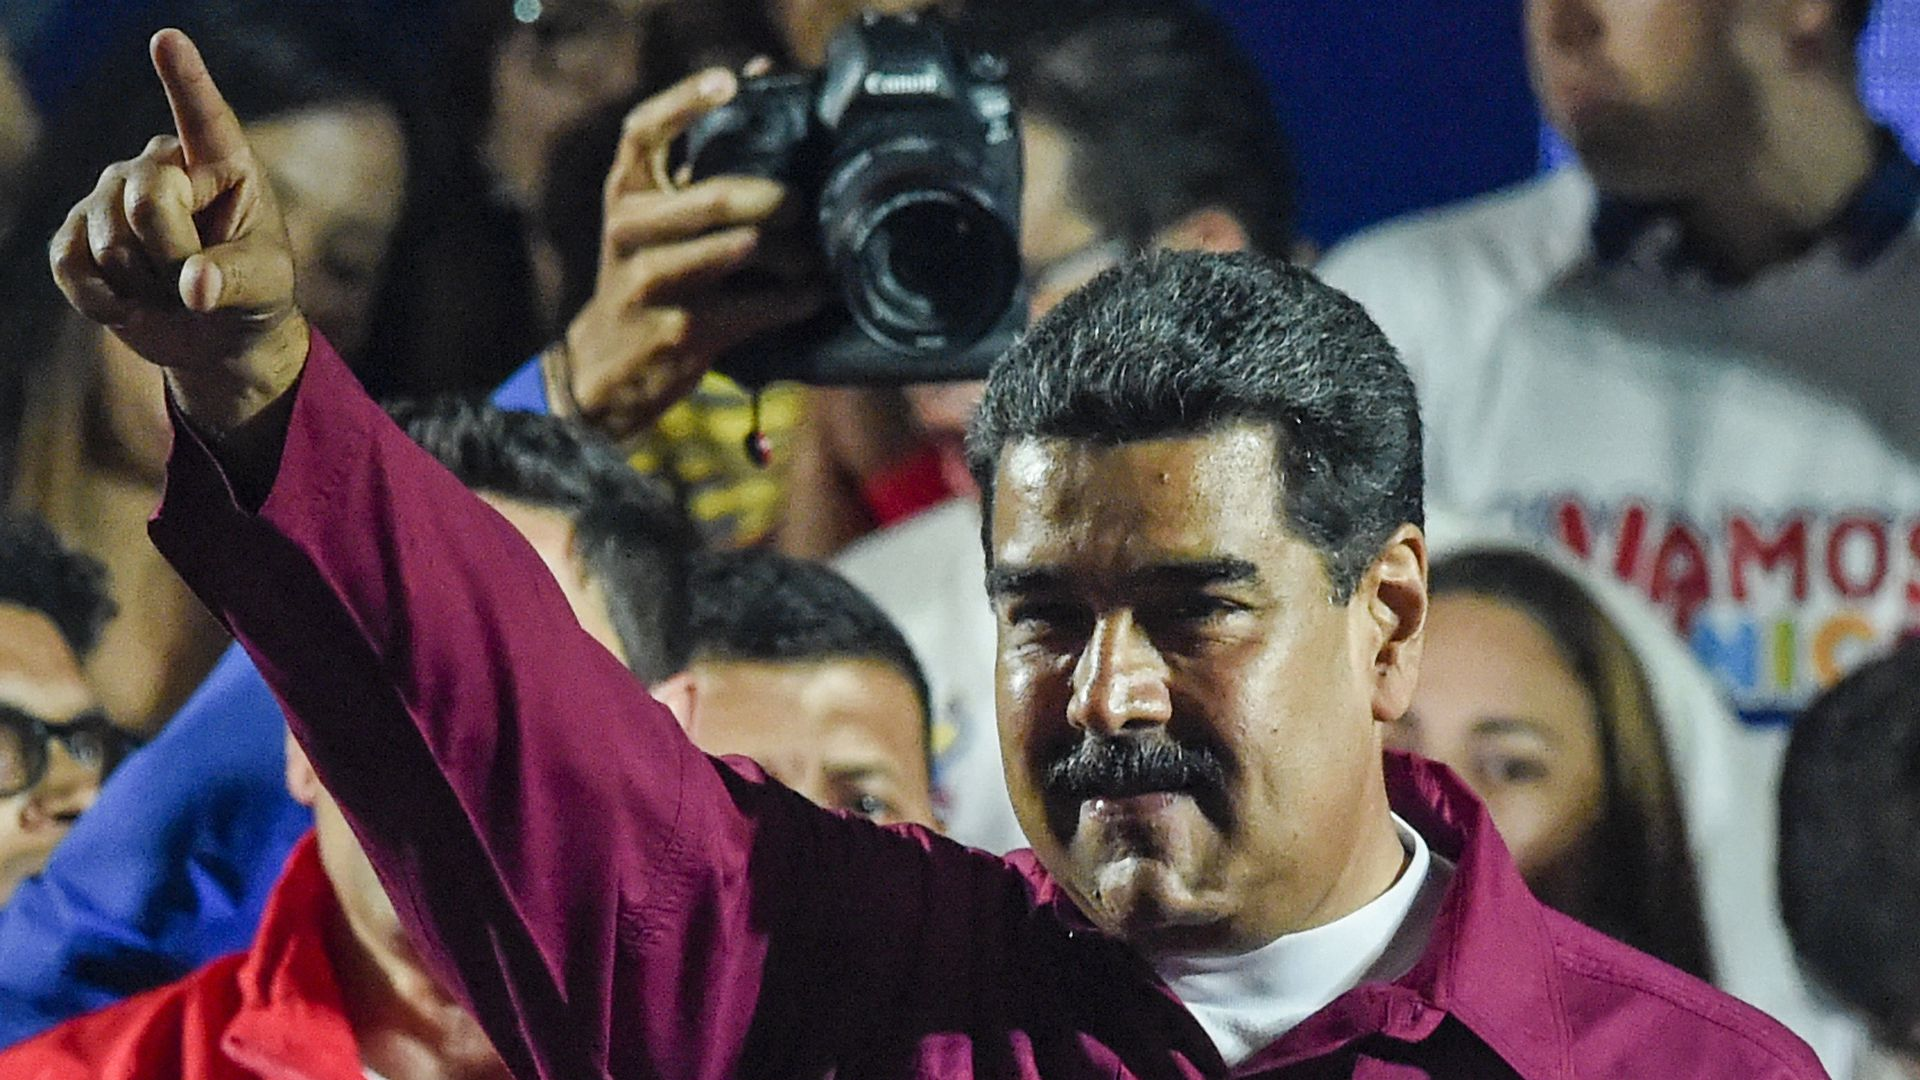 Venezuelan President Nicolas Maduro gestures after the National Electoral Council (CNE) announced the results of the voting on election day in Venezuela, on May 20, 2018.